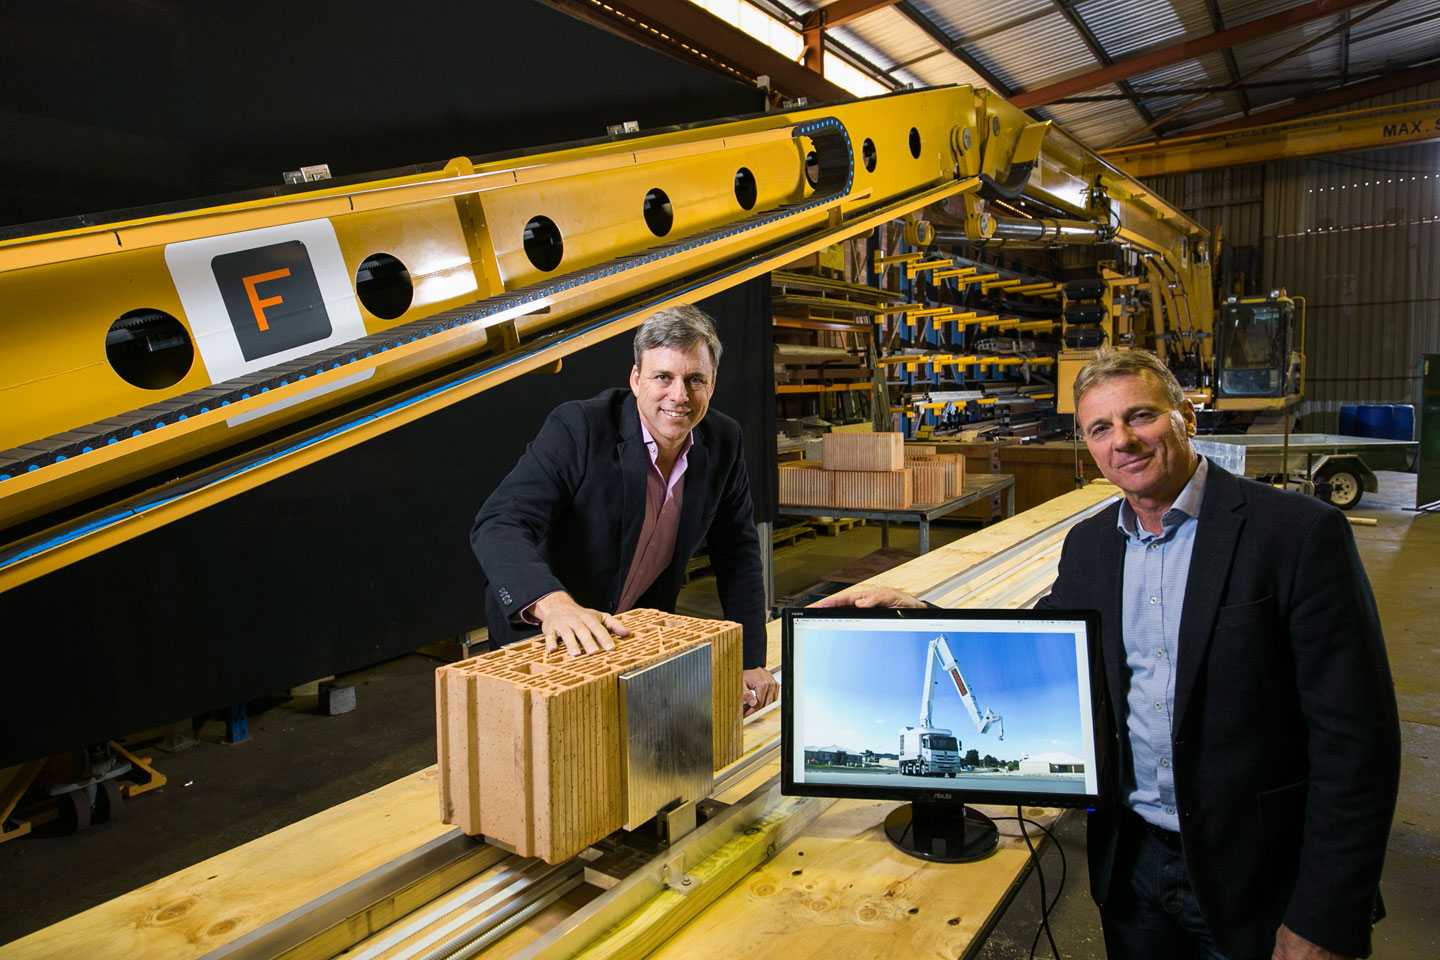 Fastbrick Robotics' CTO, Mark Pivac, and CEO, Mike Pivac